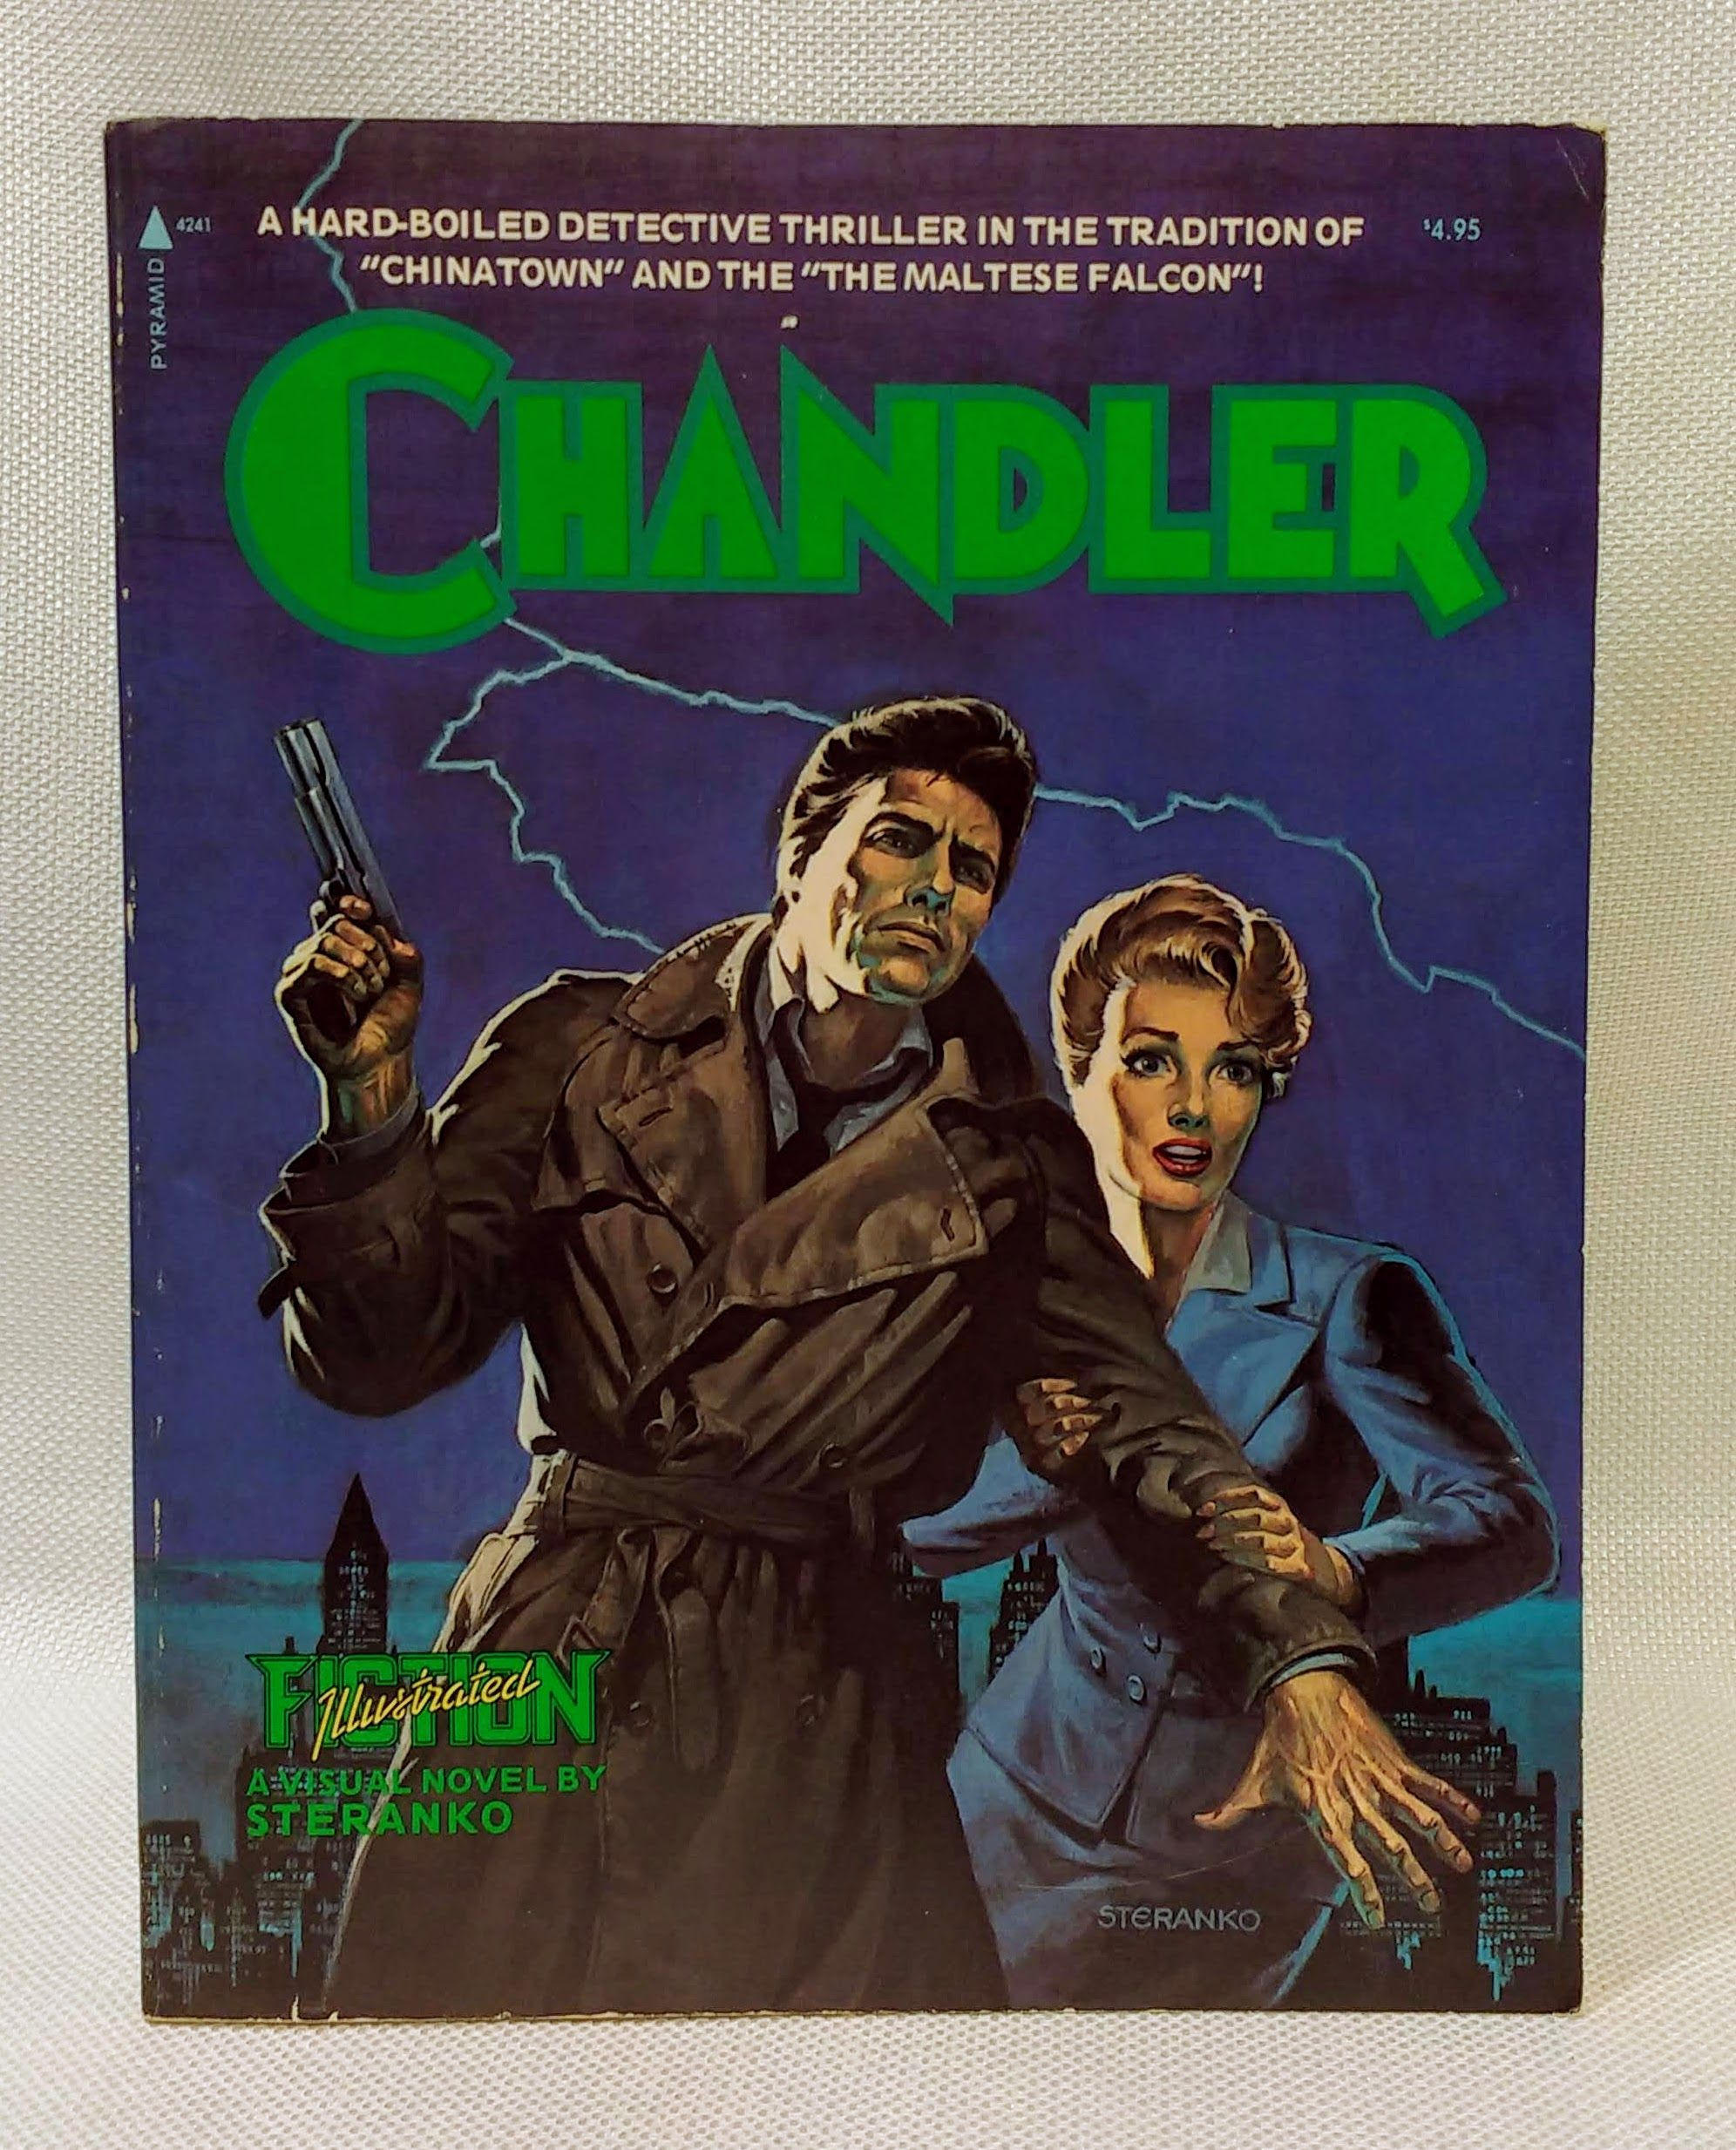 Red Tide: A Chandler Novel (Fiction Illustrated, Vol. 3), Steranko; Raymond Chandler